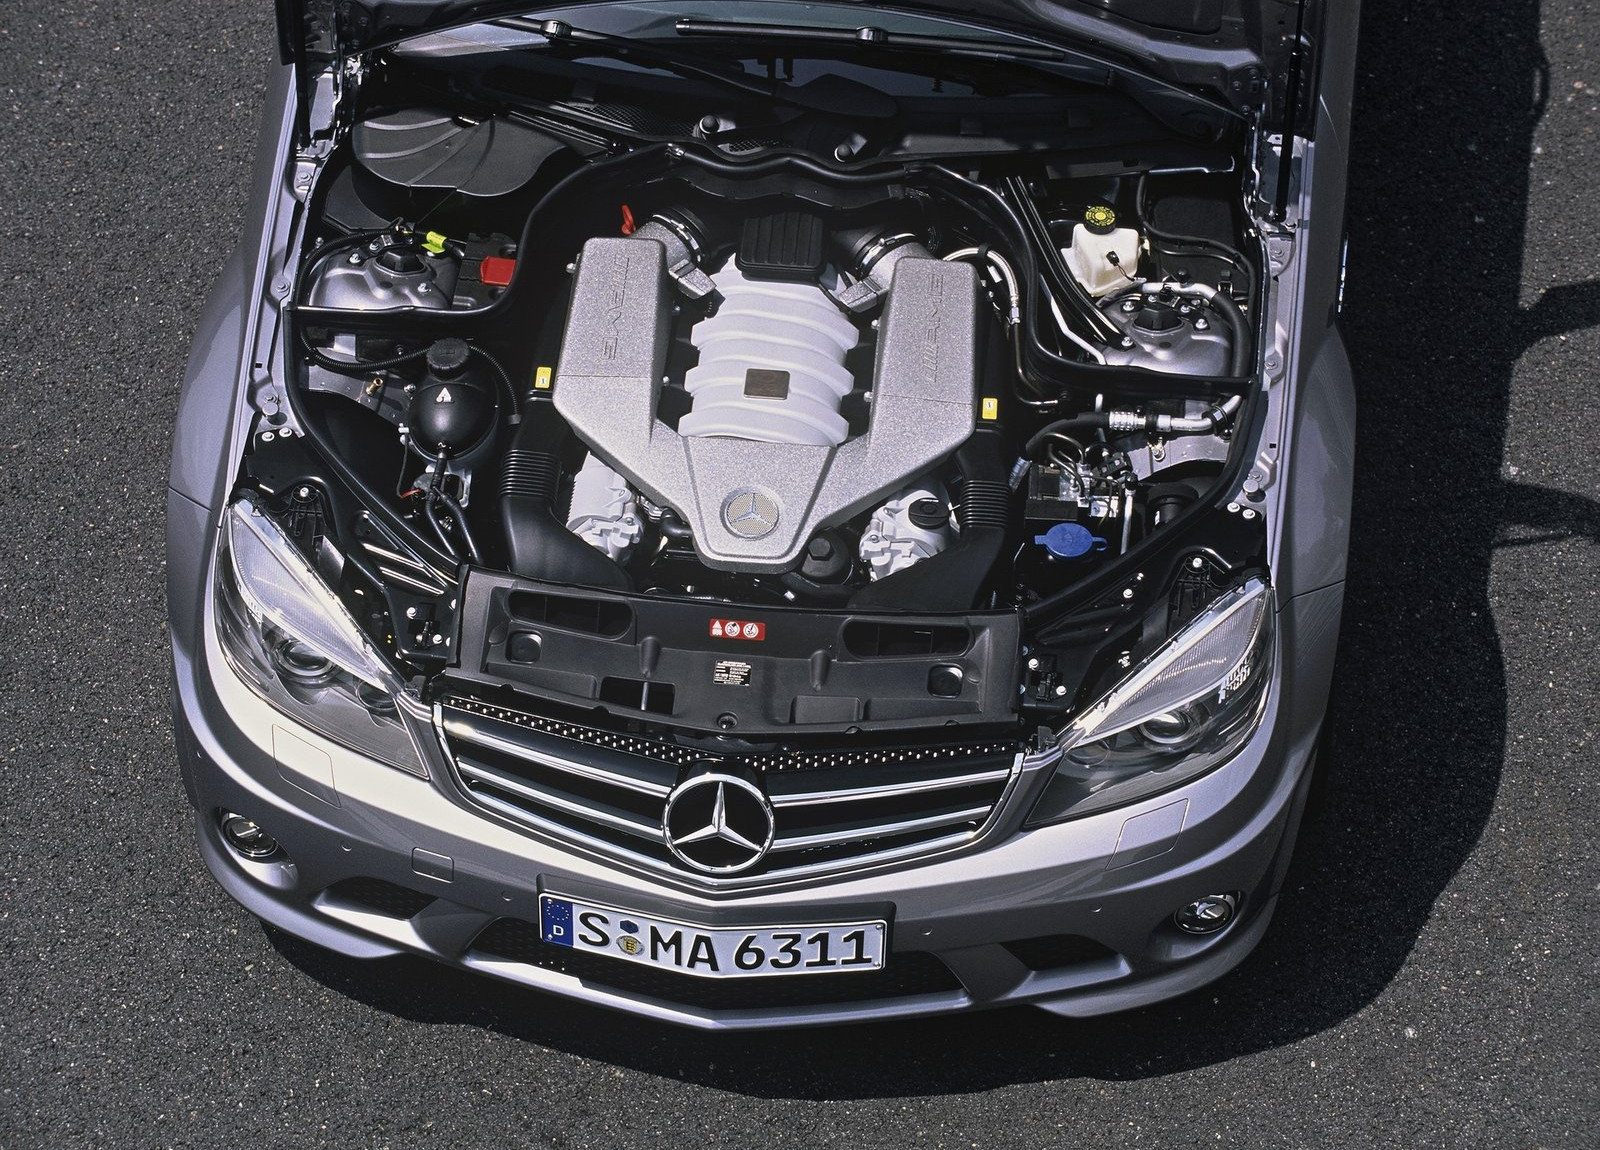 Mercedes-Benz-C63_AMG_2008_1600x1200_wallpaper_67